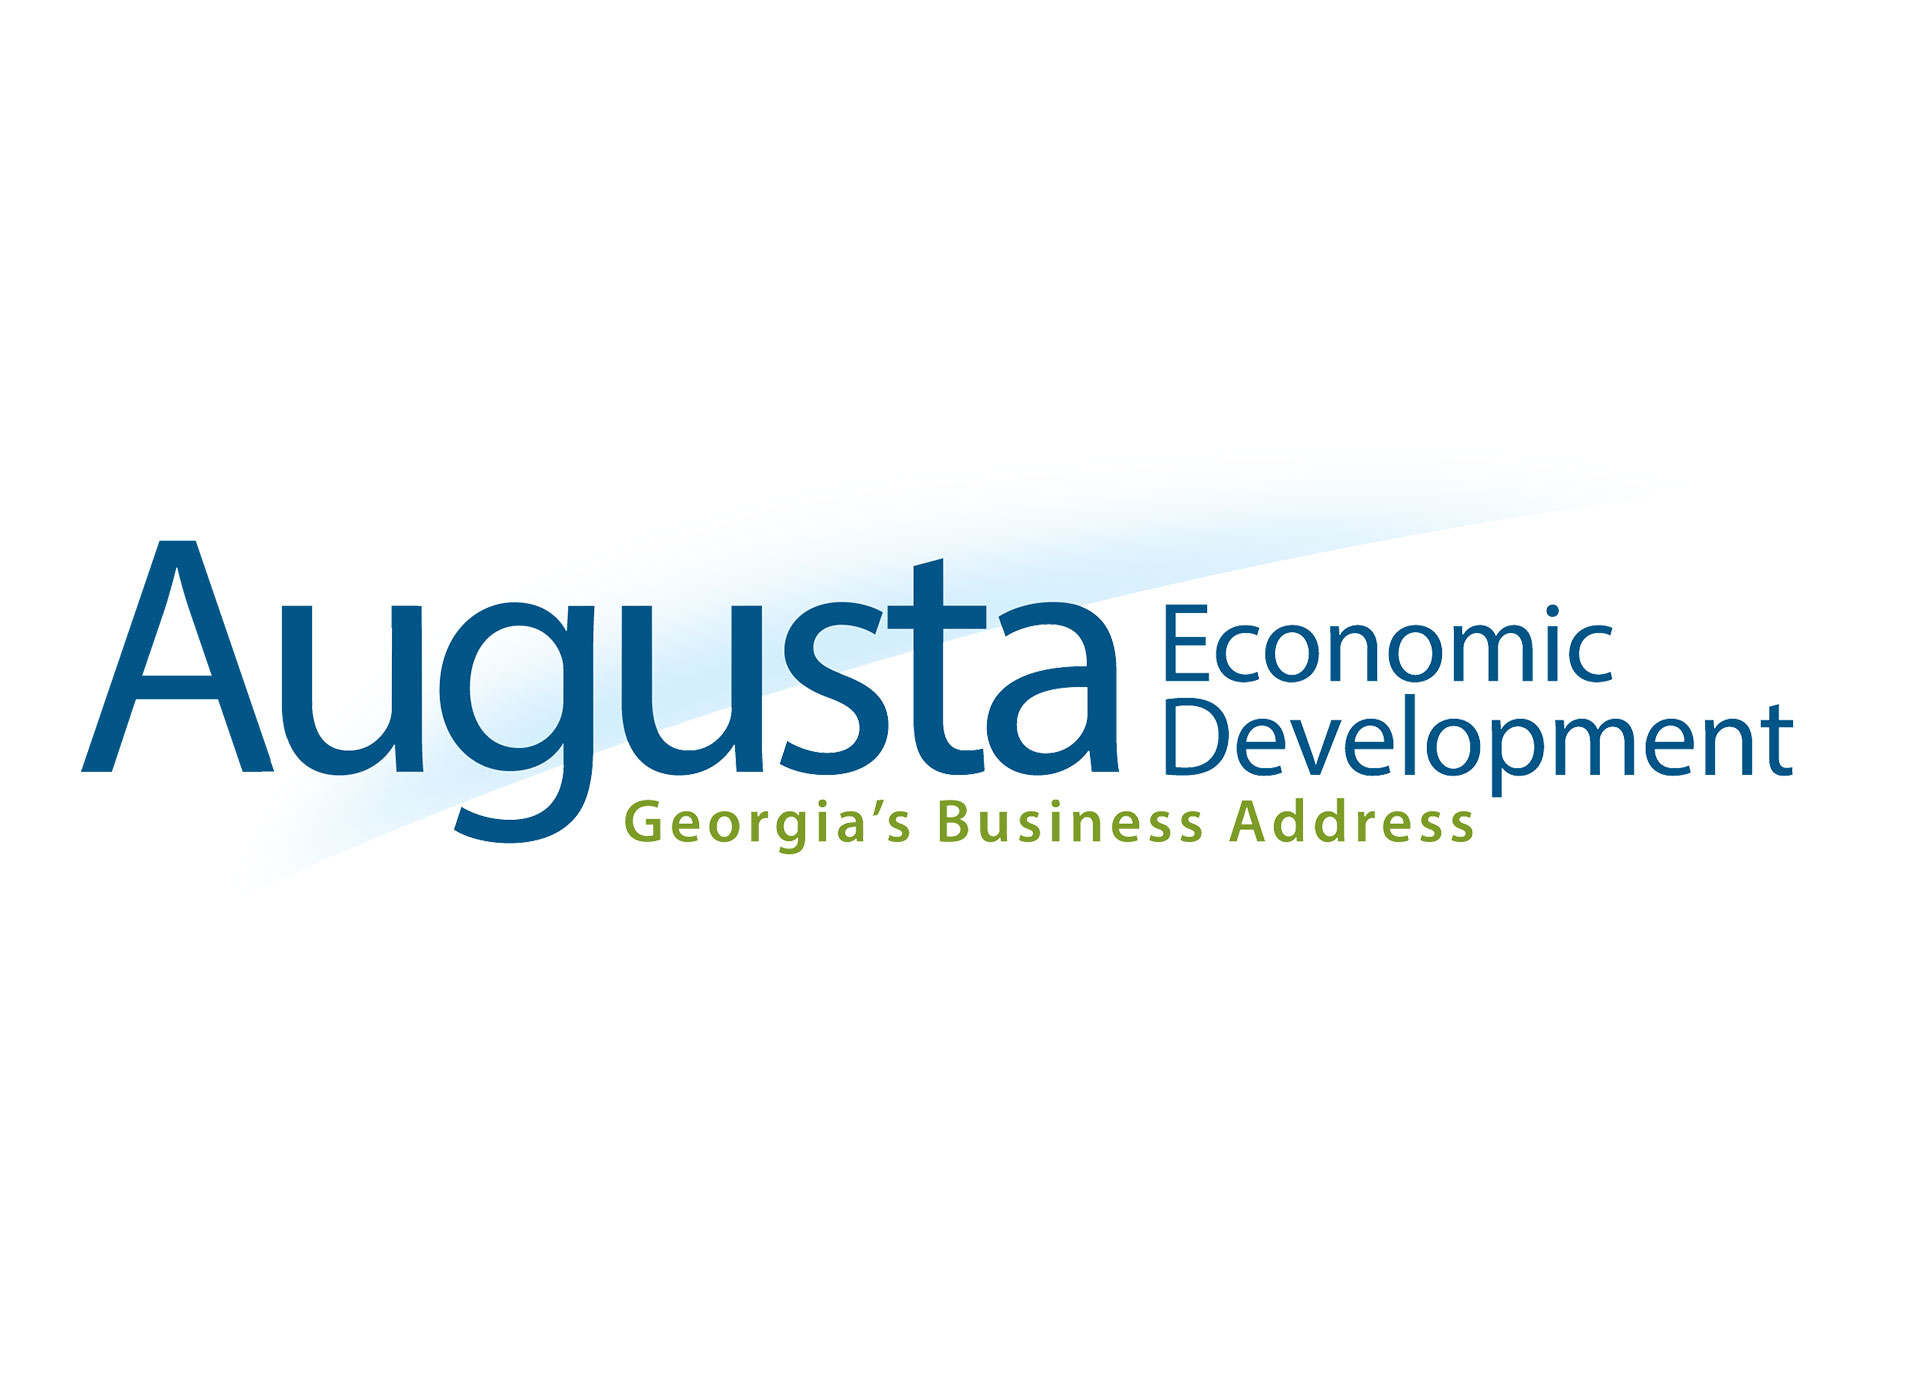 Augusta Economic Development Logo